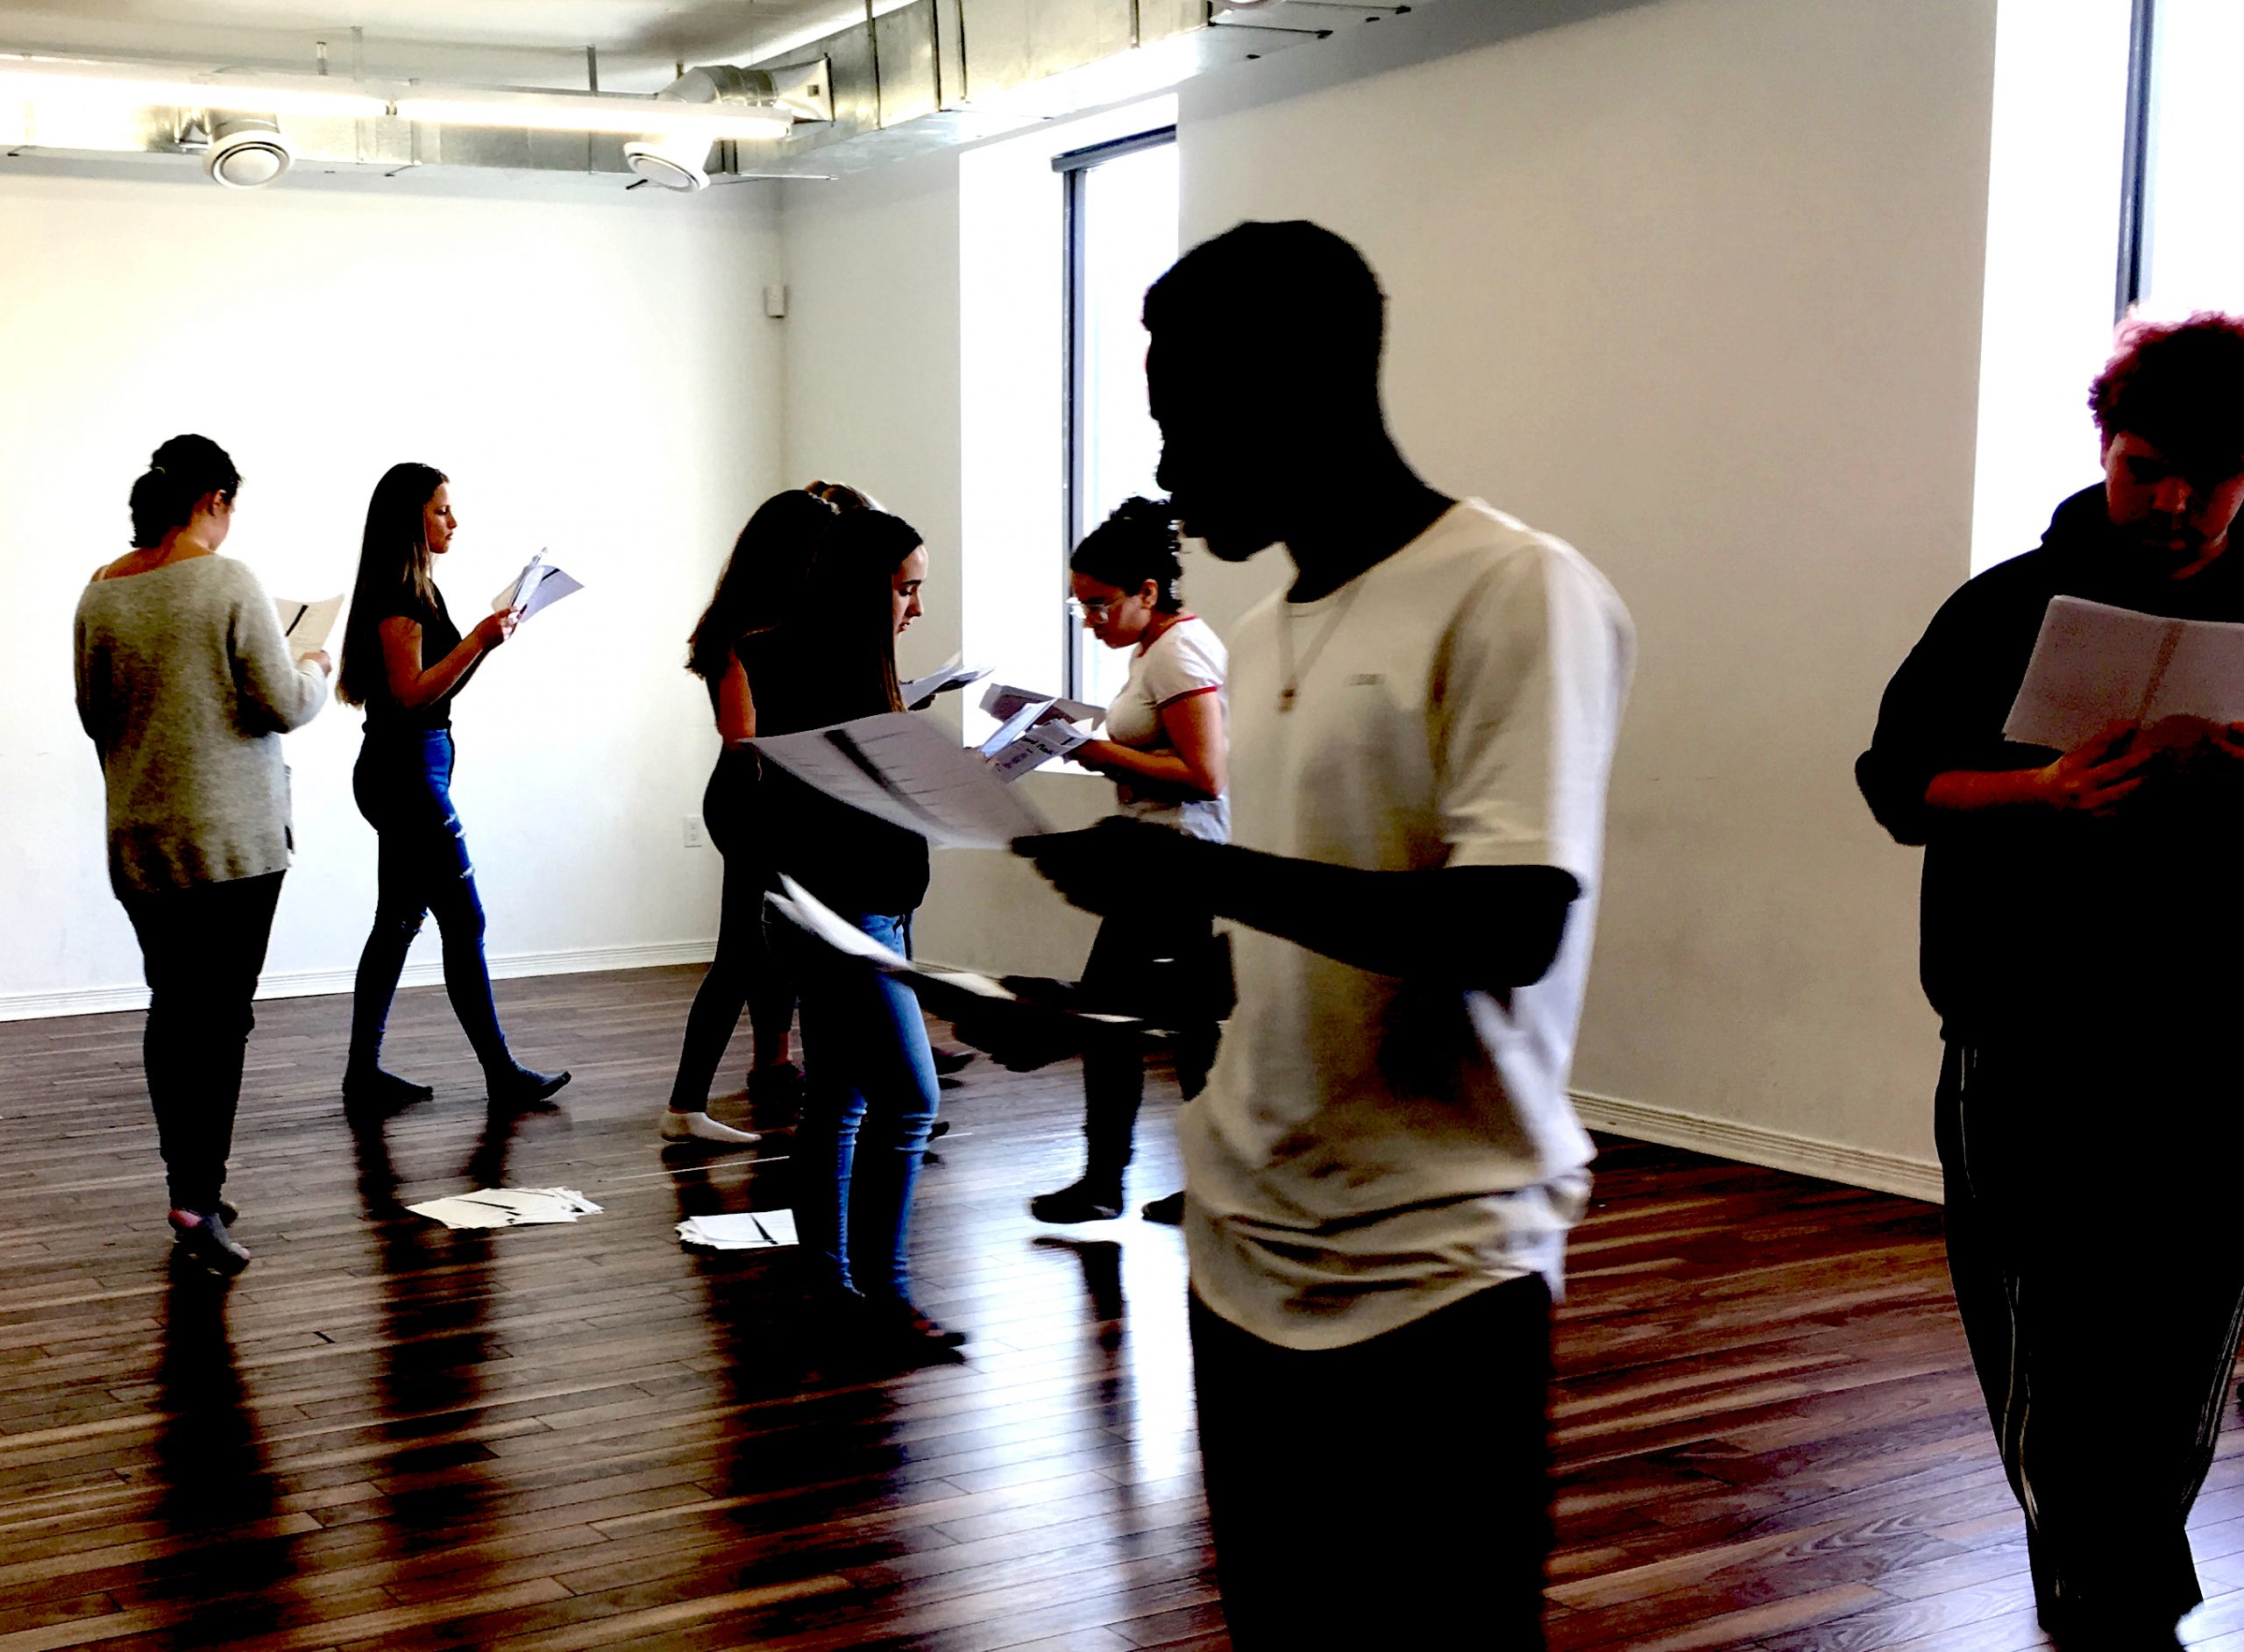 students moving around a rehearsal studio